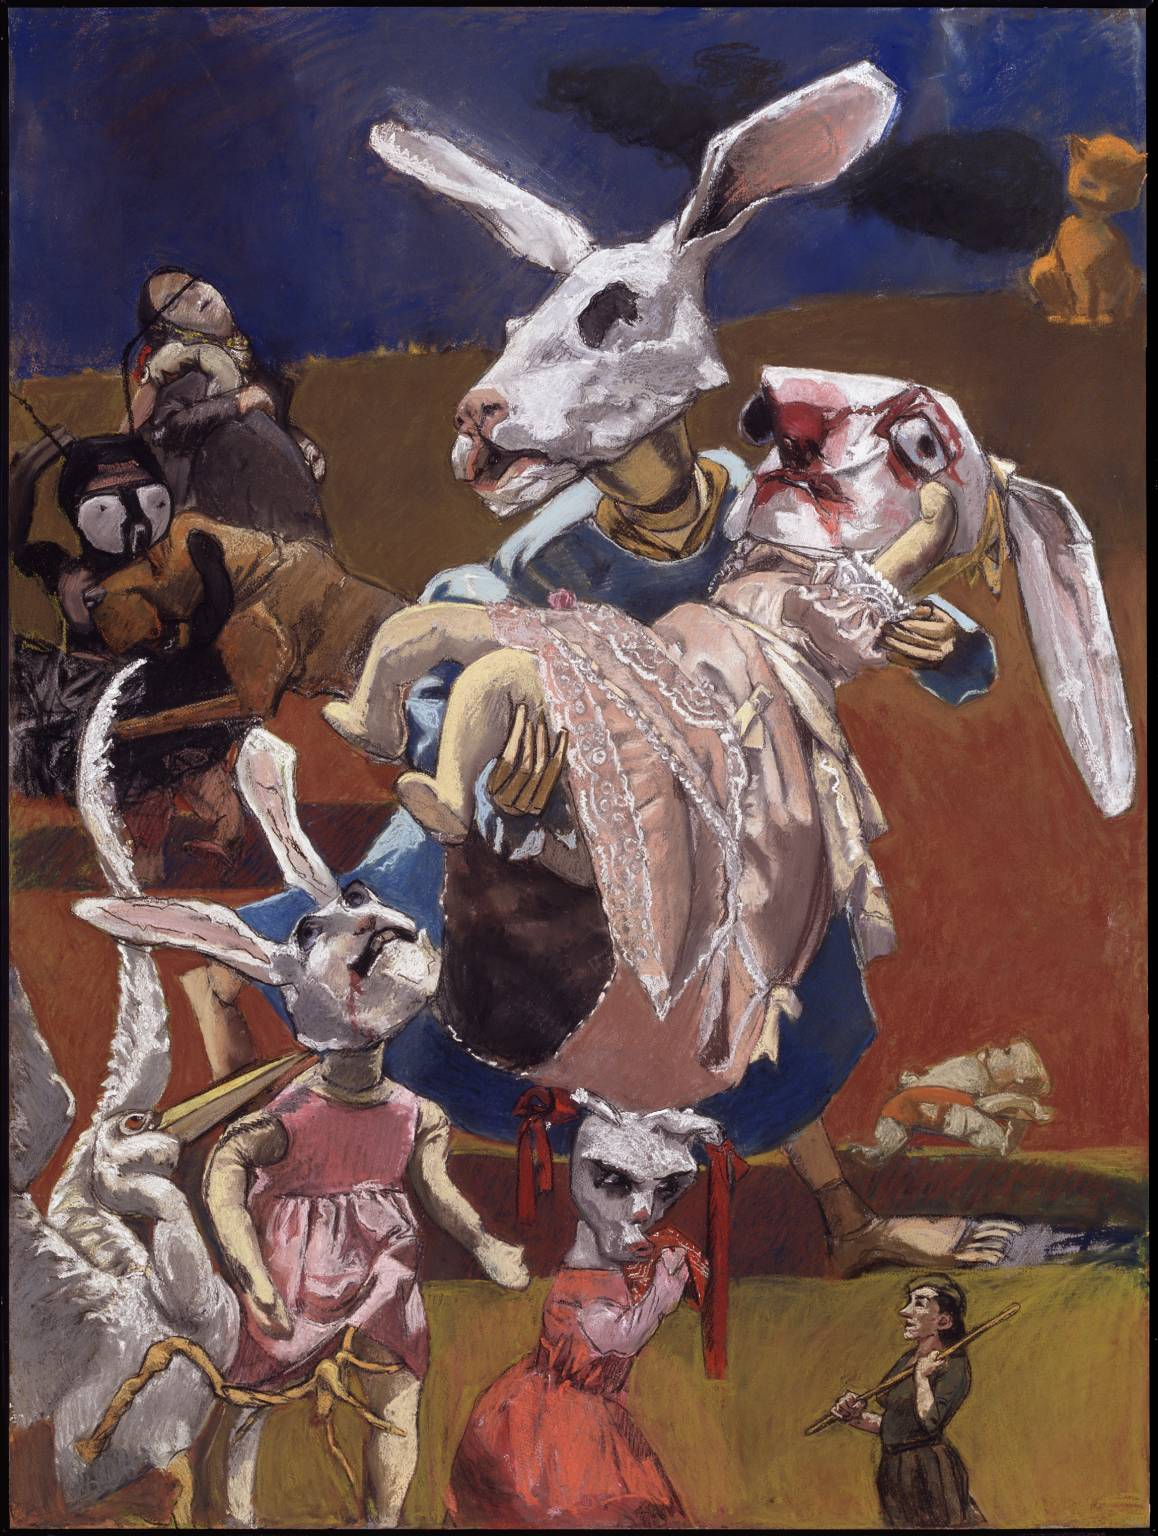 War 2003 Paula Rego born 1935 Presented by the artist (Building the Tate Collection) 2005 http://www.tate.org.uk/art/work/T12024